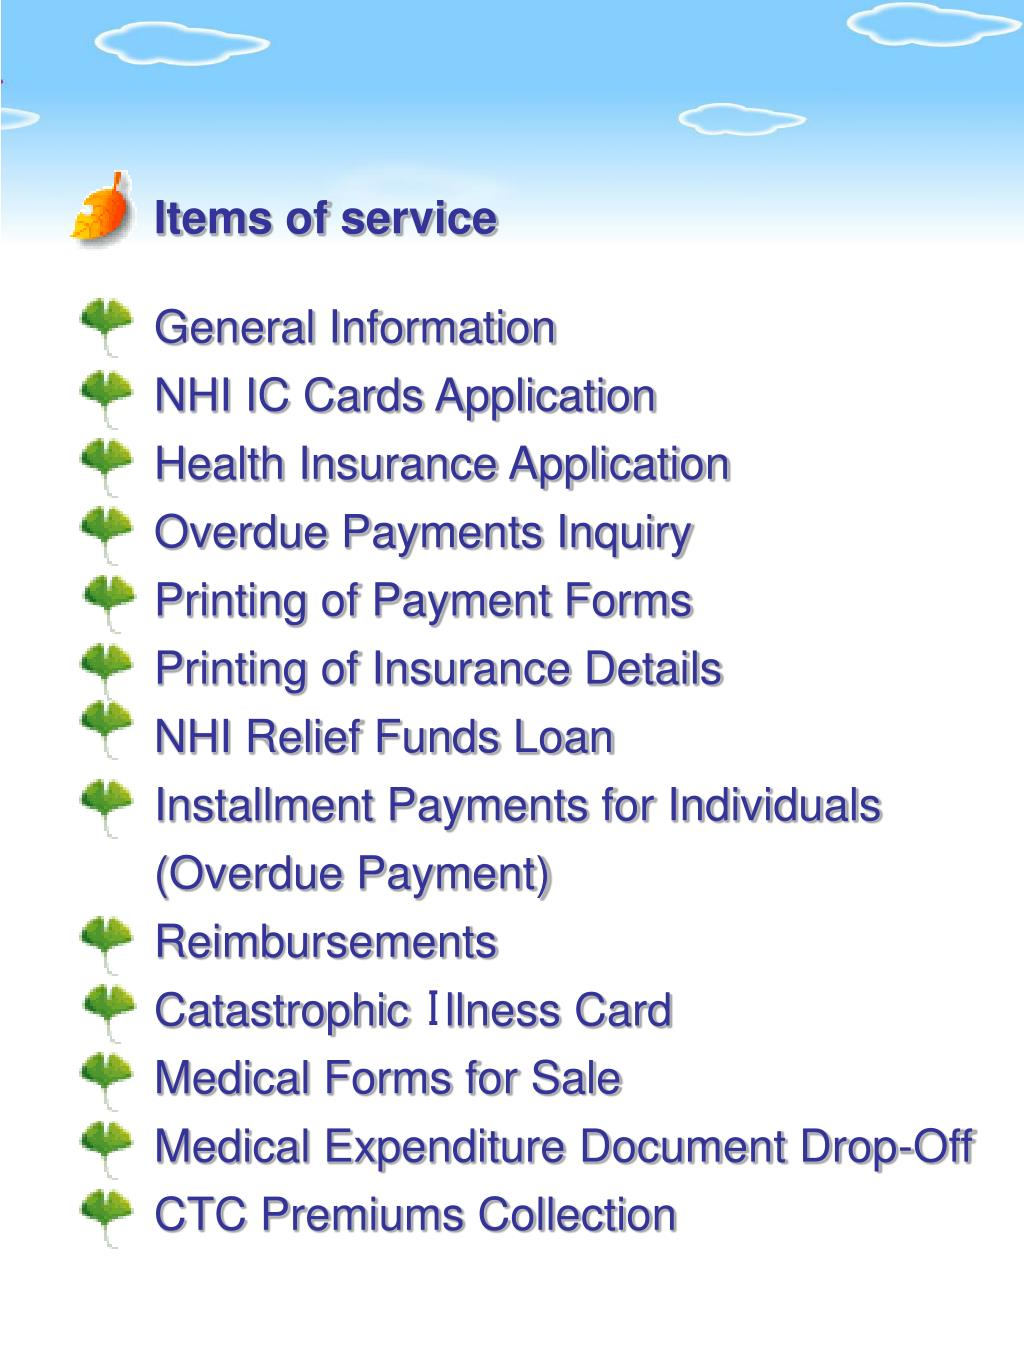 Items of service